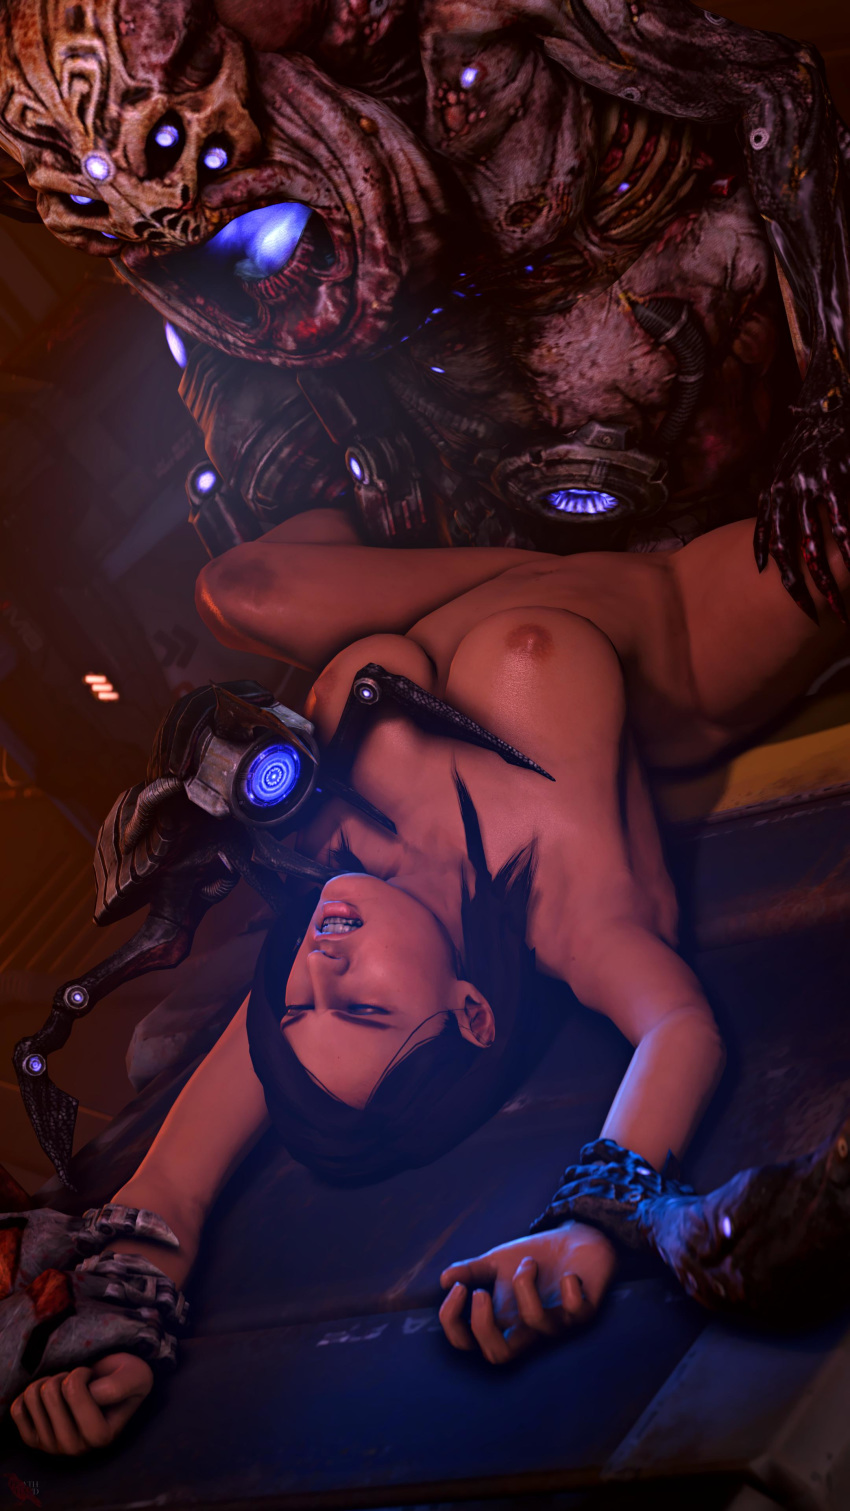 mass 2 effect How to train your dragon 3 gif